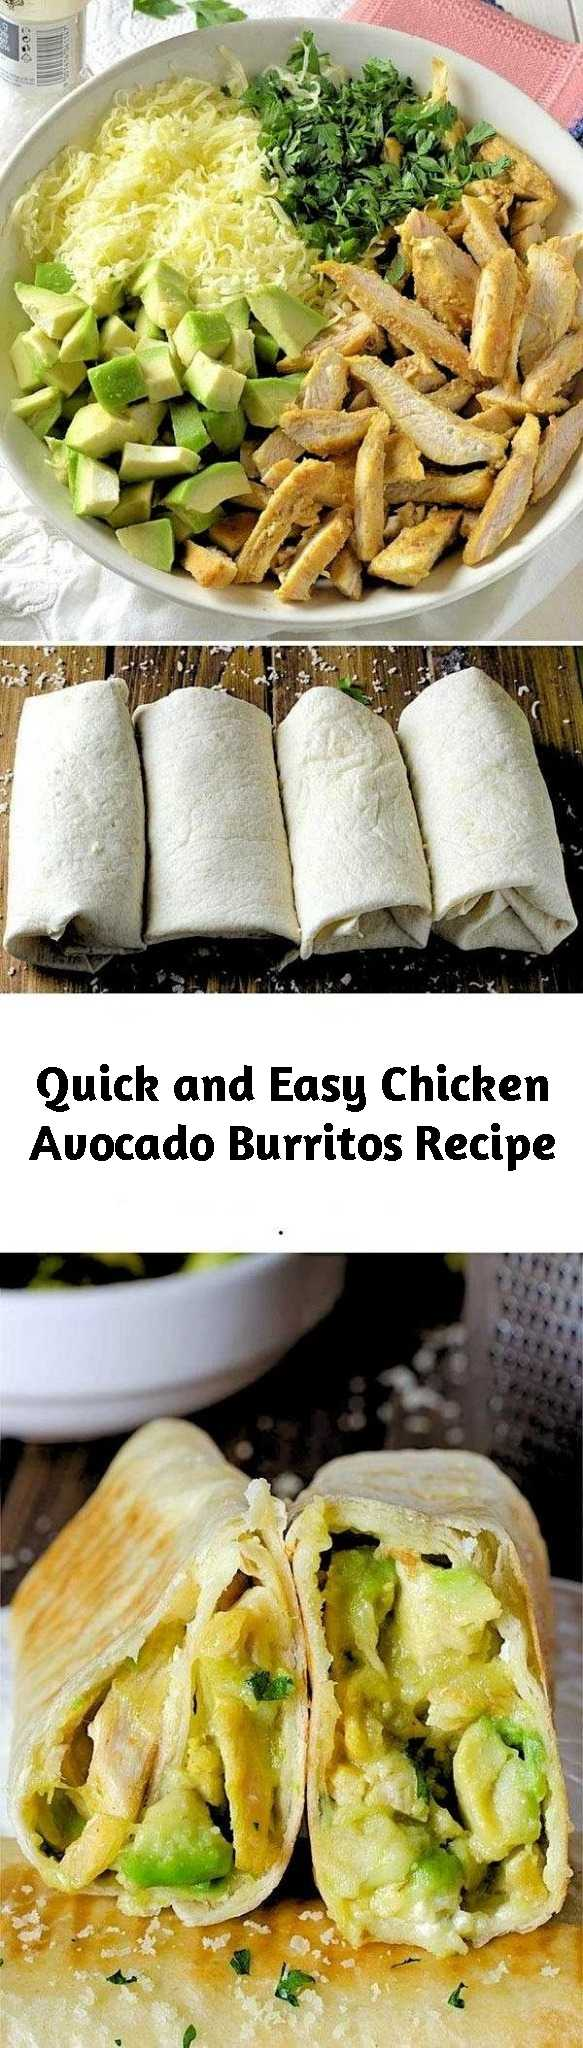 Quick and Easy Chicken Avocado Burritos Recipe - Looking for quick and easy dinner recipes? This Chicken Avocado Burritos come together with just 15 min prep! If you are in a big hurry to prepare a beautiful lunch or dinner, maybe it's time for you to try the healthy and easy Chicken Avocado Burritos. I consider this a real trick up my sleeve for situations like this just like this Chicken Avocado Salad Roll Ups. #healthydinnerrecipes #easyrecipes #chickenavocado